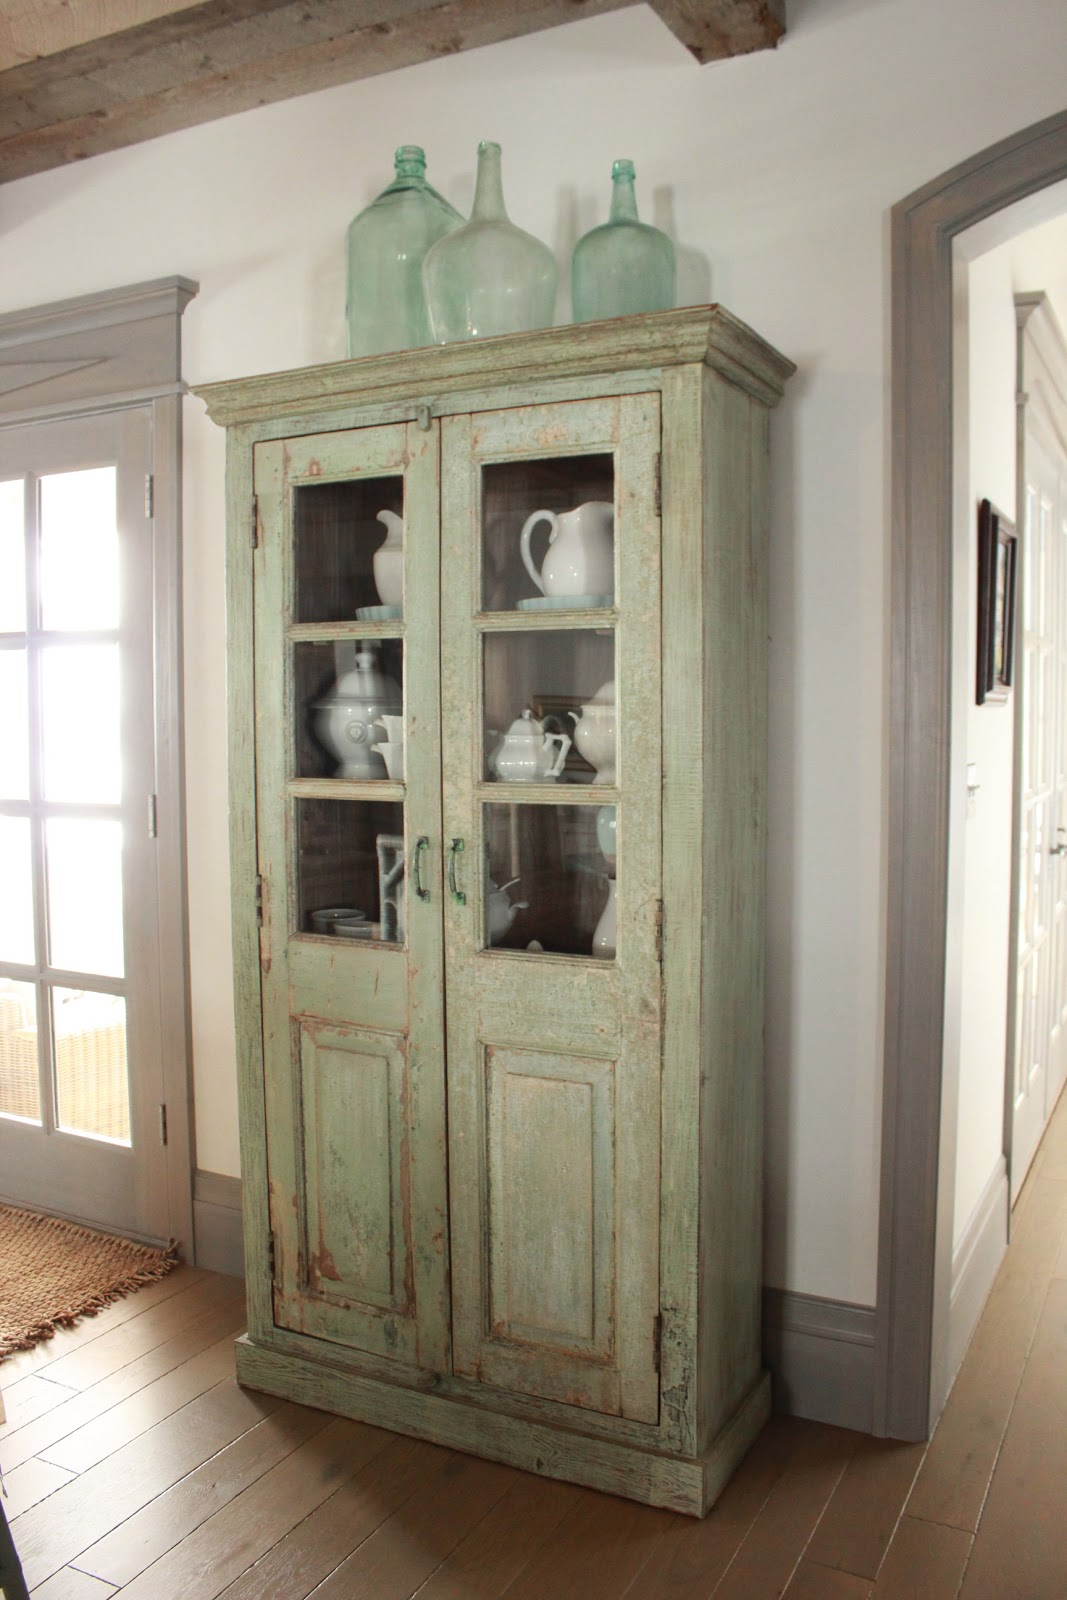 Magnificent Gustavian French weathered green cabinet in stone cottage with rustic interiors, reclaimed wood ceilings, blue-grey, green, and collected European antiques. Designed by Desiree Ashworth. Find ideas for grey, blue, and green paint colors.